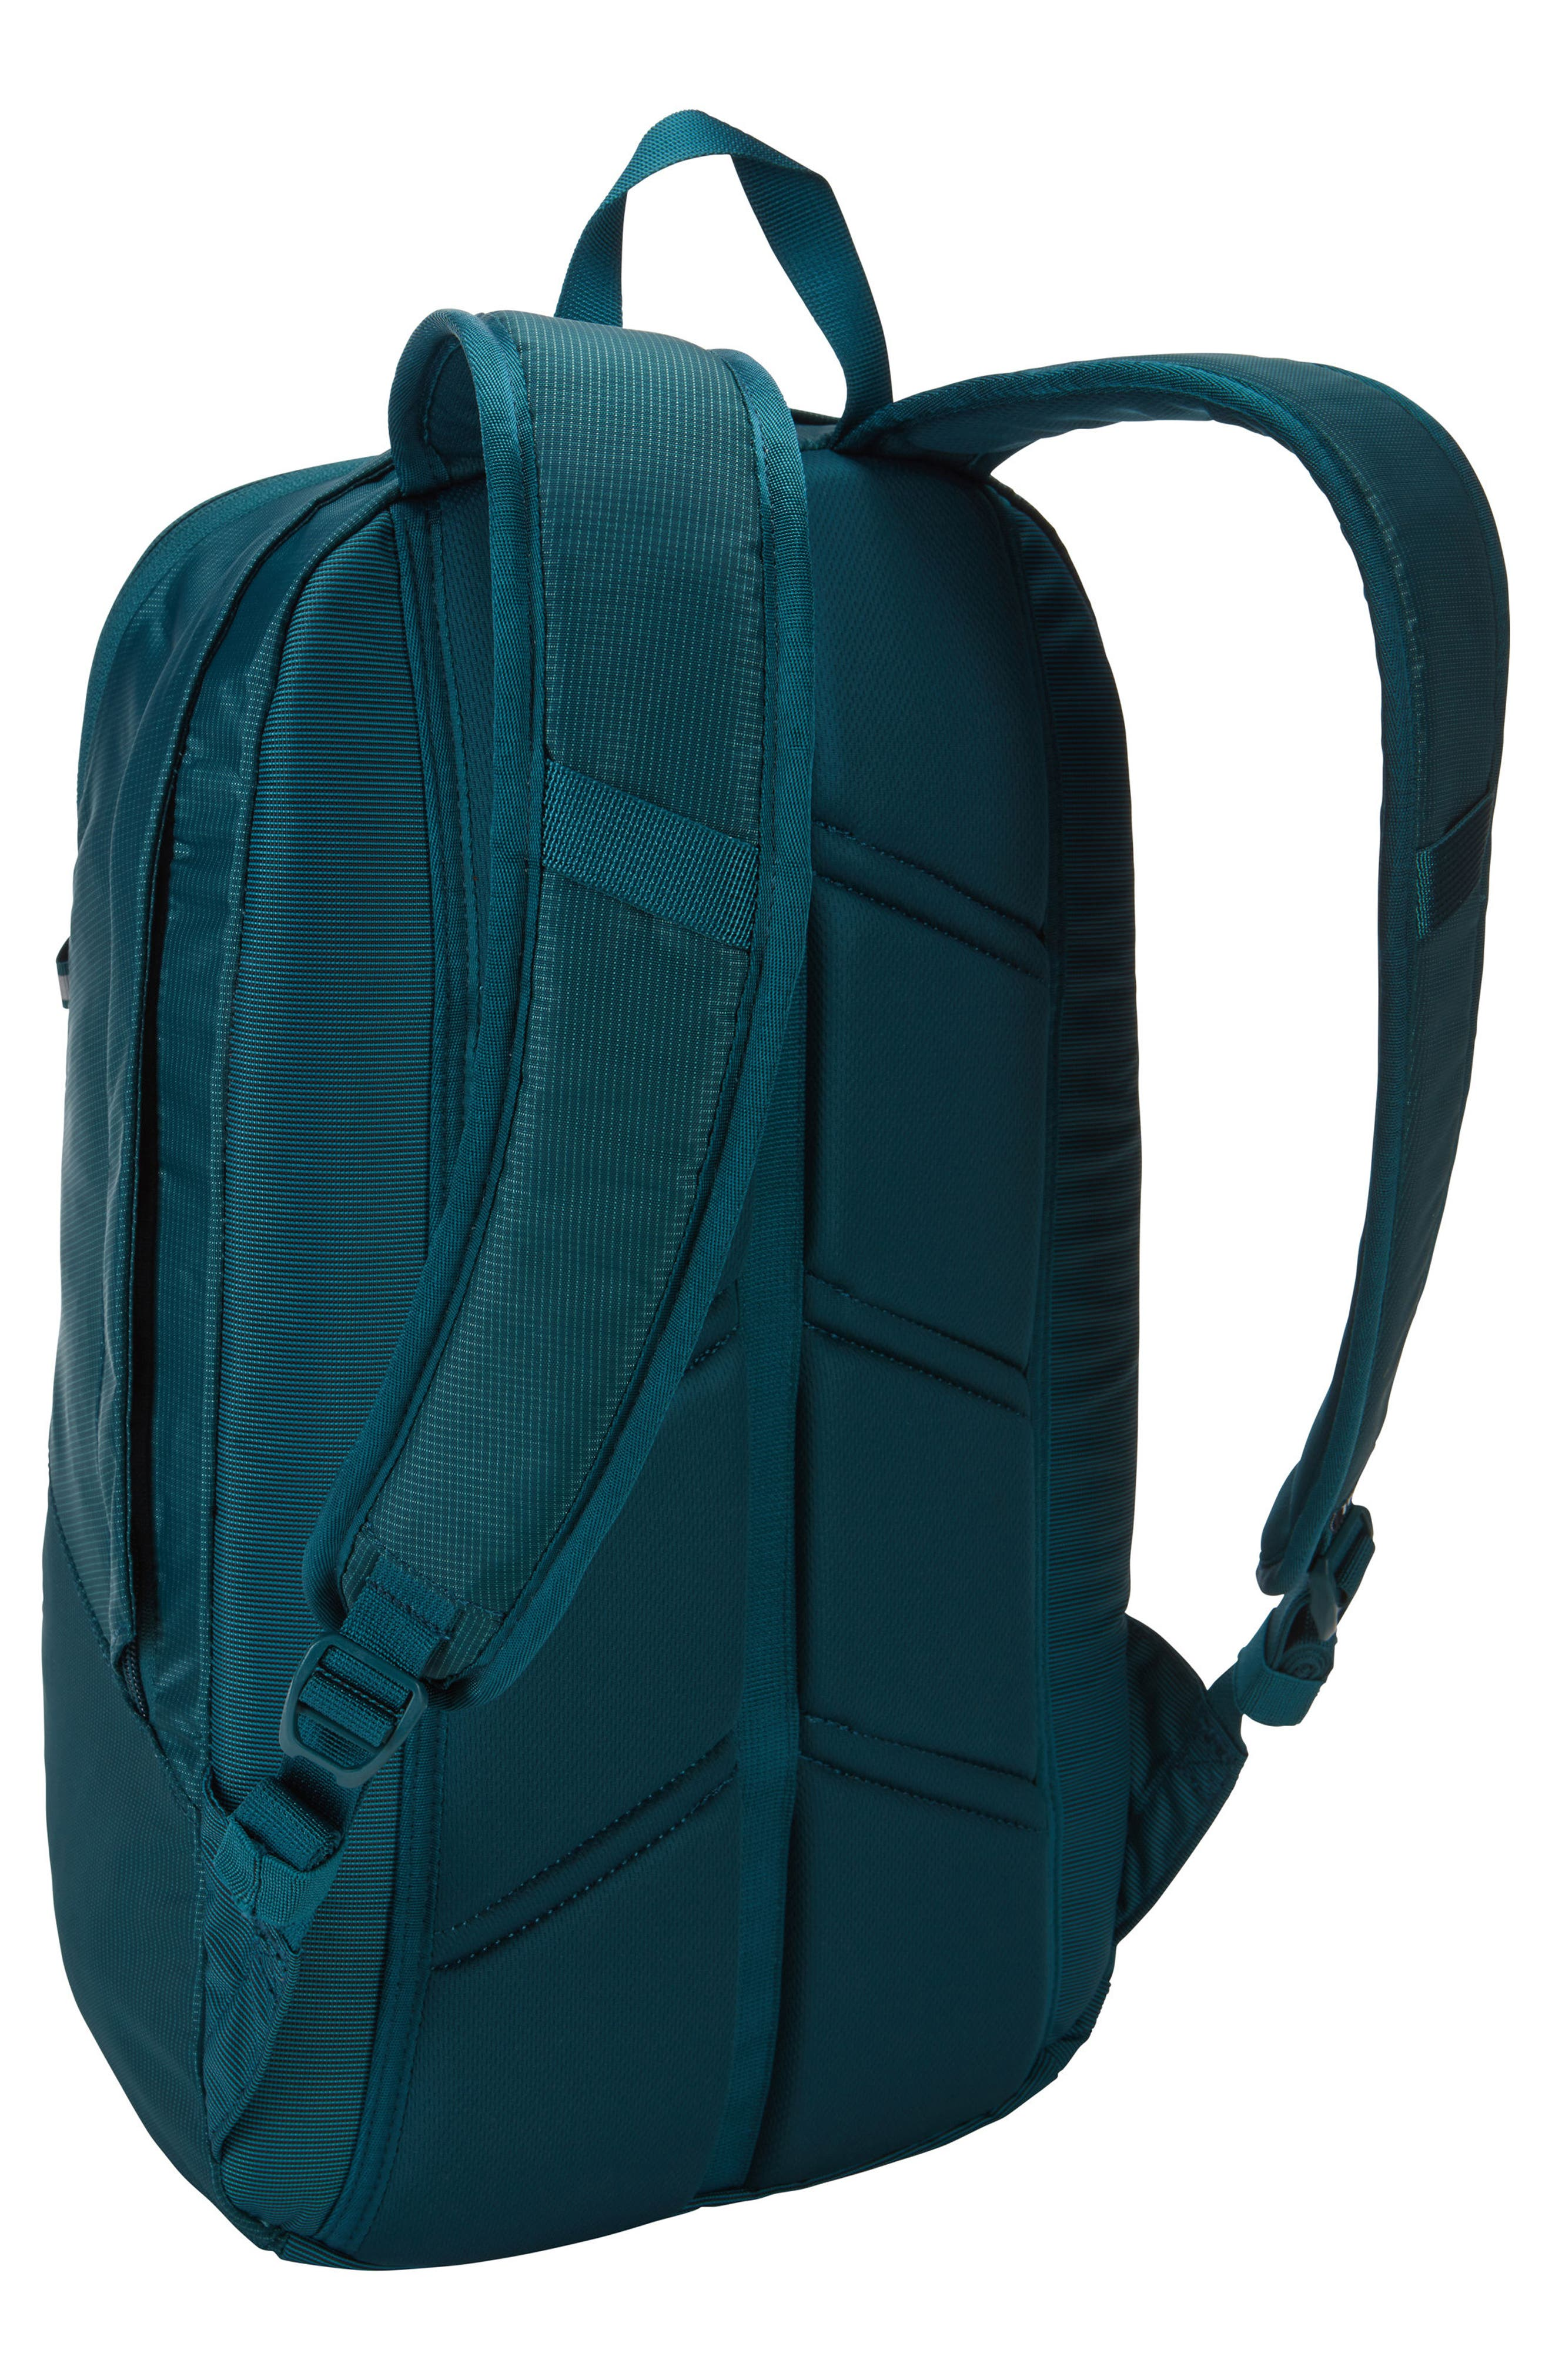 EnRoute Backpack,                             Alternate thumbnail 2, color,                             Teal